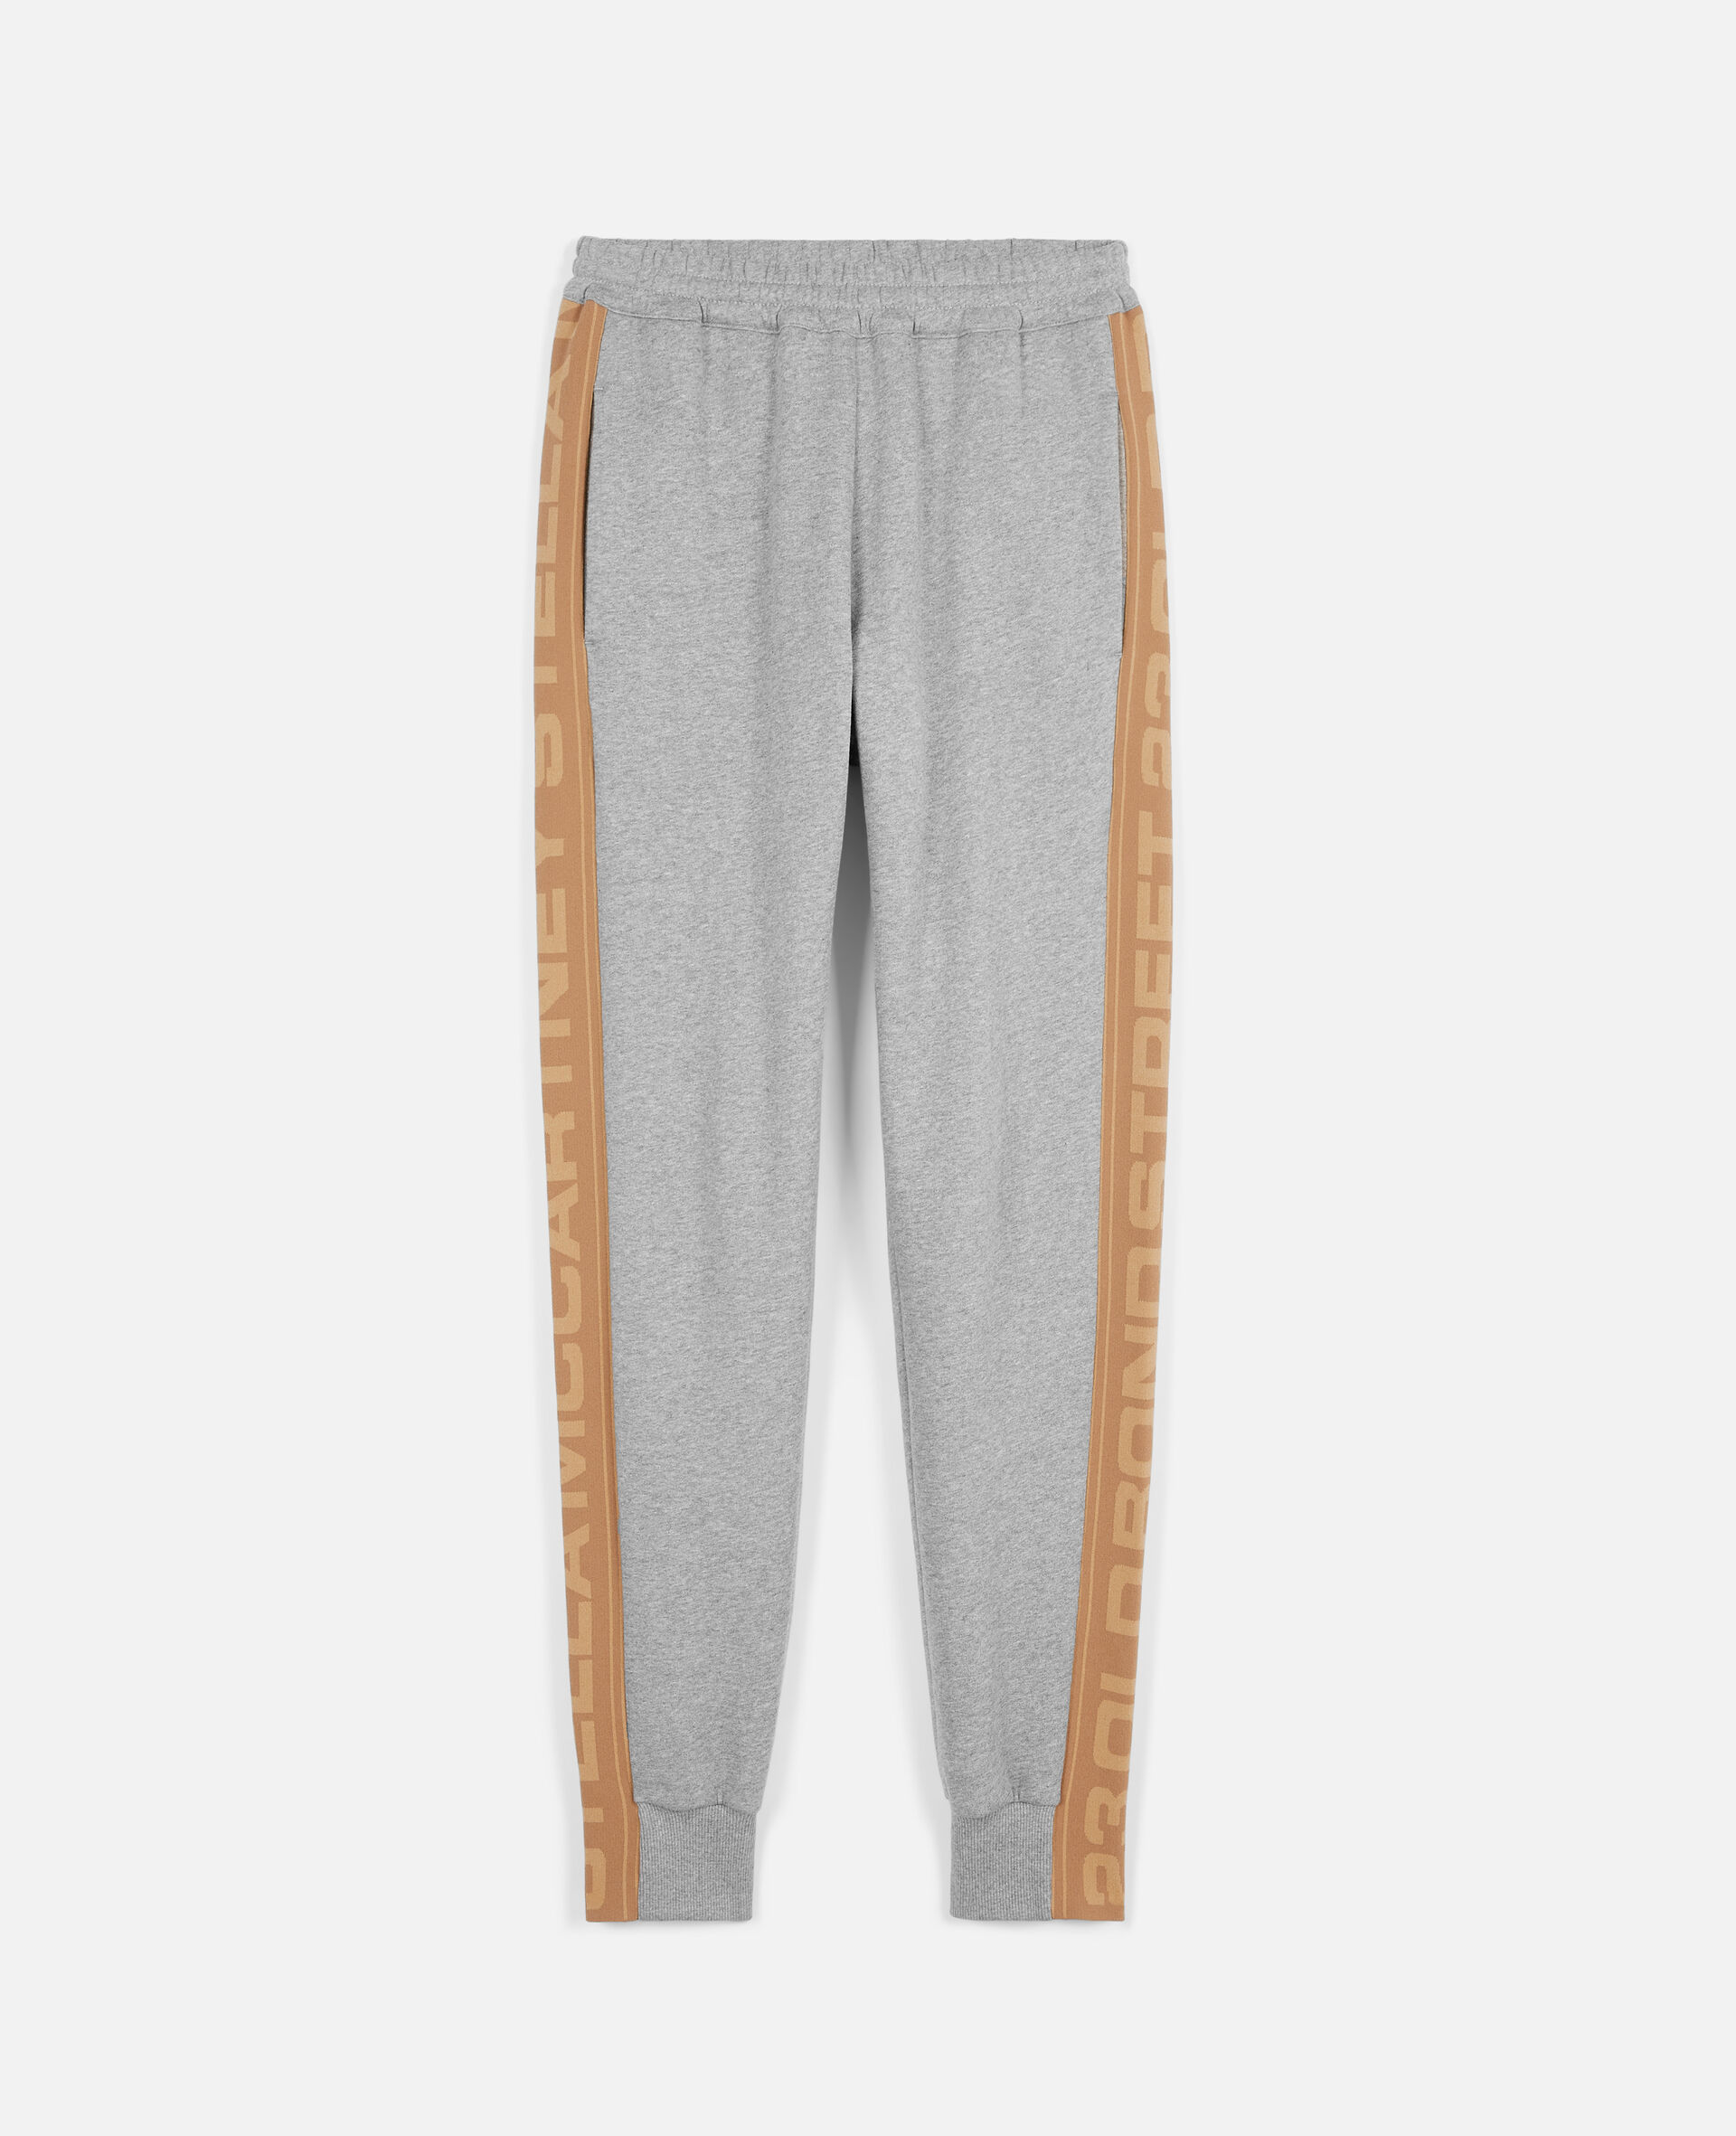 23 OBS Knitted Pants -Grey-large image number 0